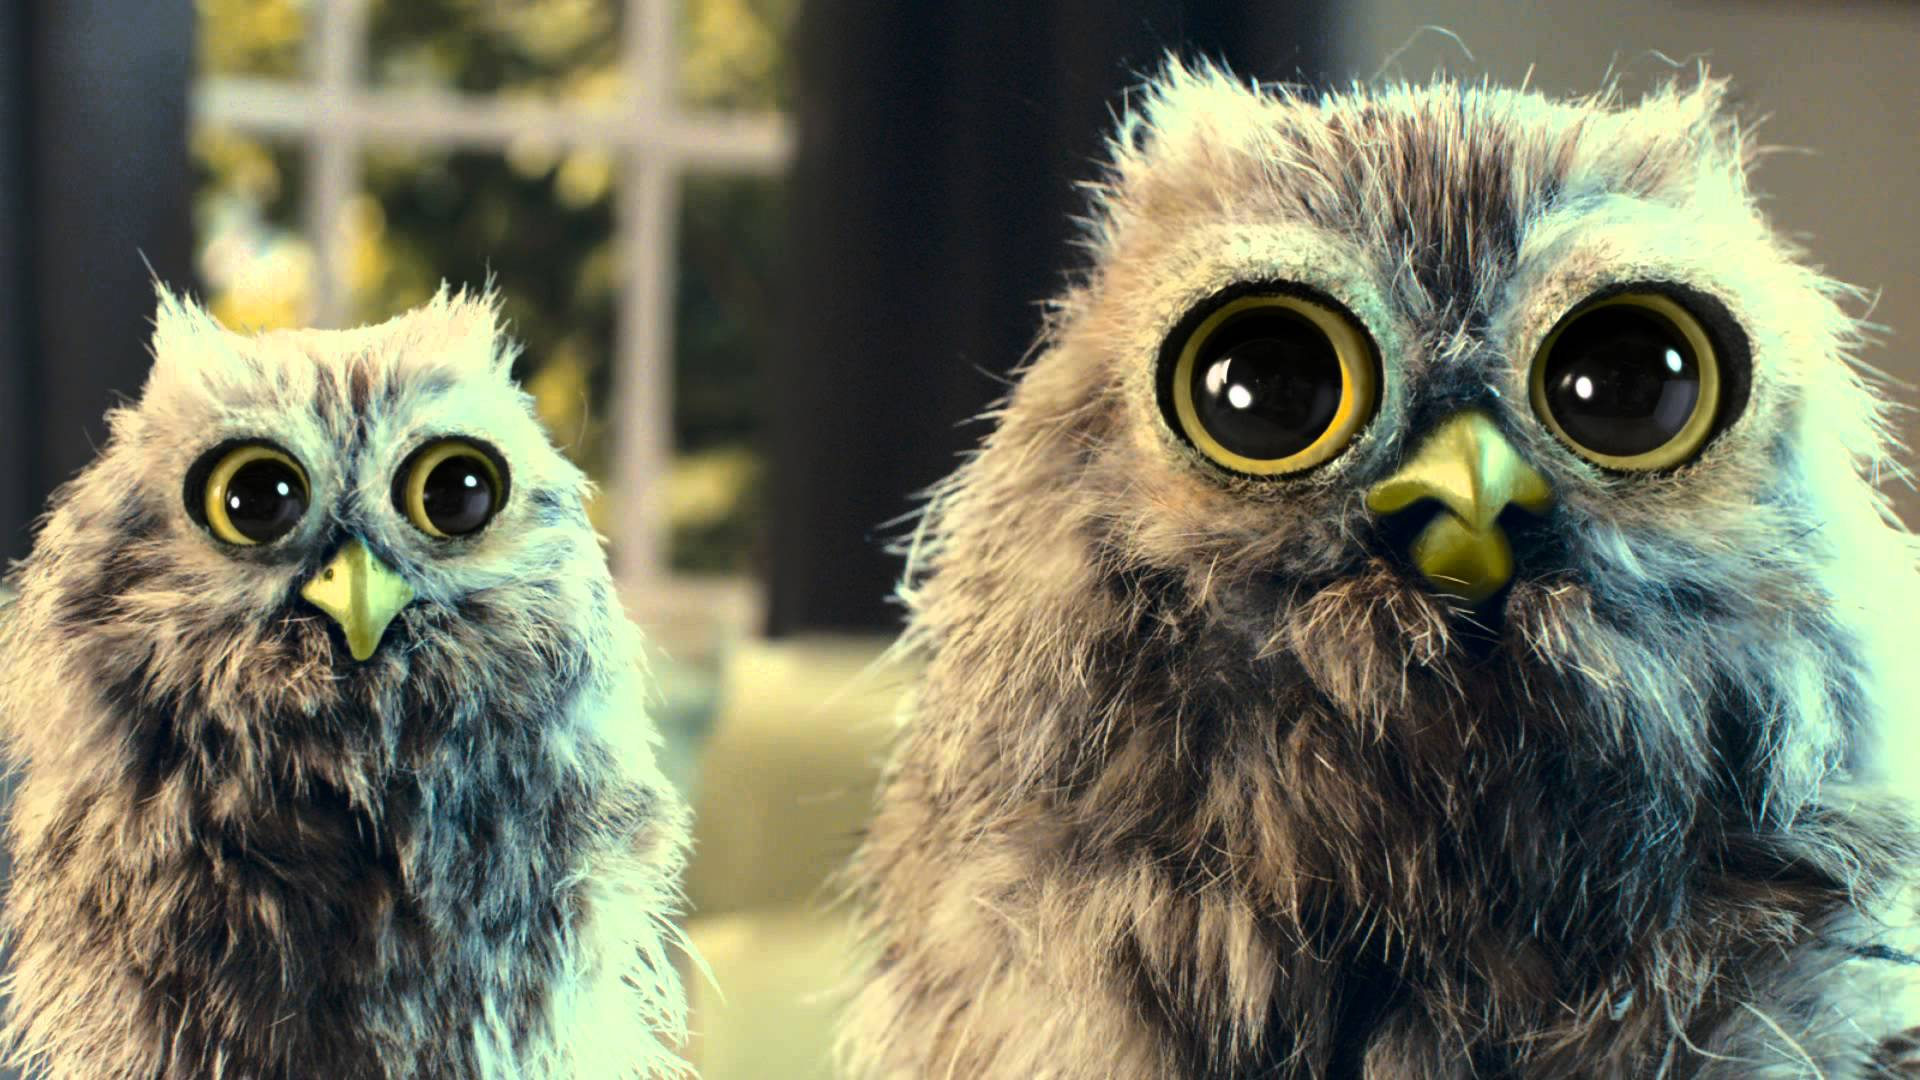 McVitie's Owl TV Advert